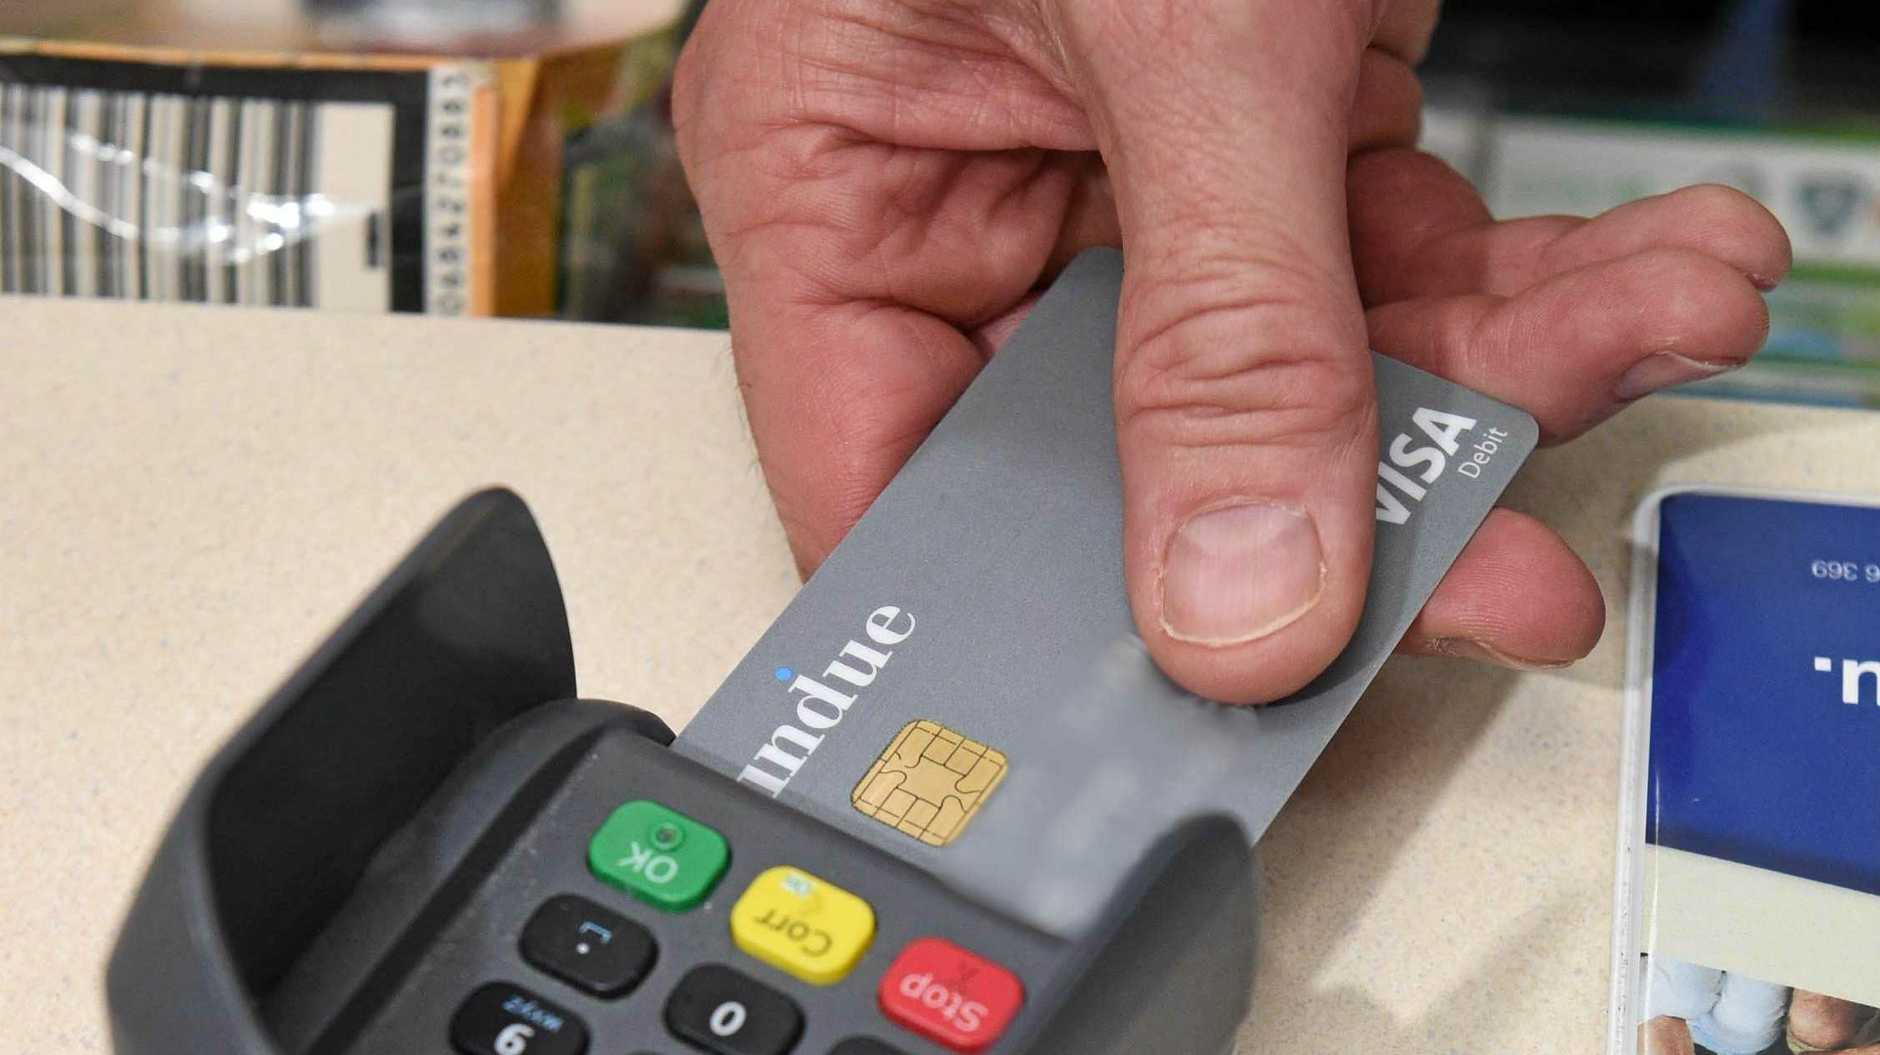 RUMOURS: Wide Bay MP Llew O'Brien says claims about the cashless card expanding are just 'mischief'.